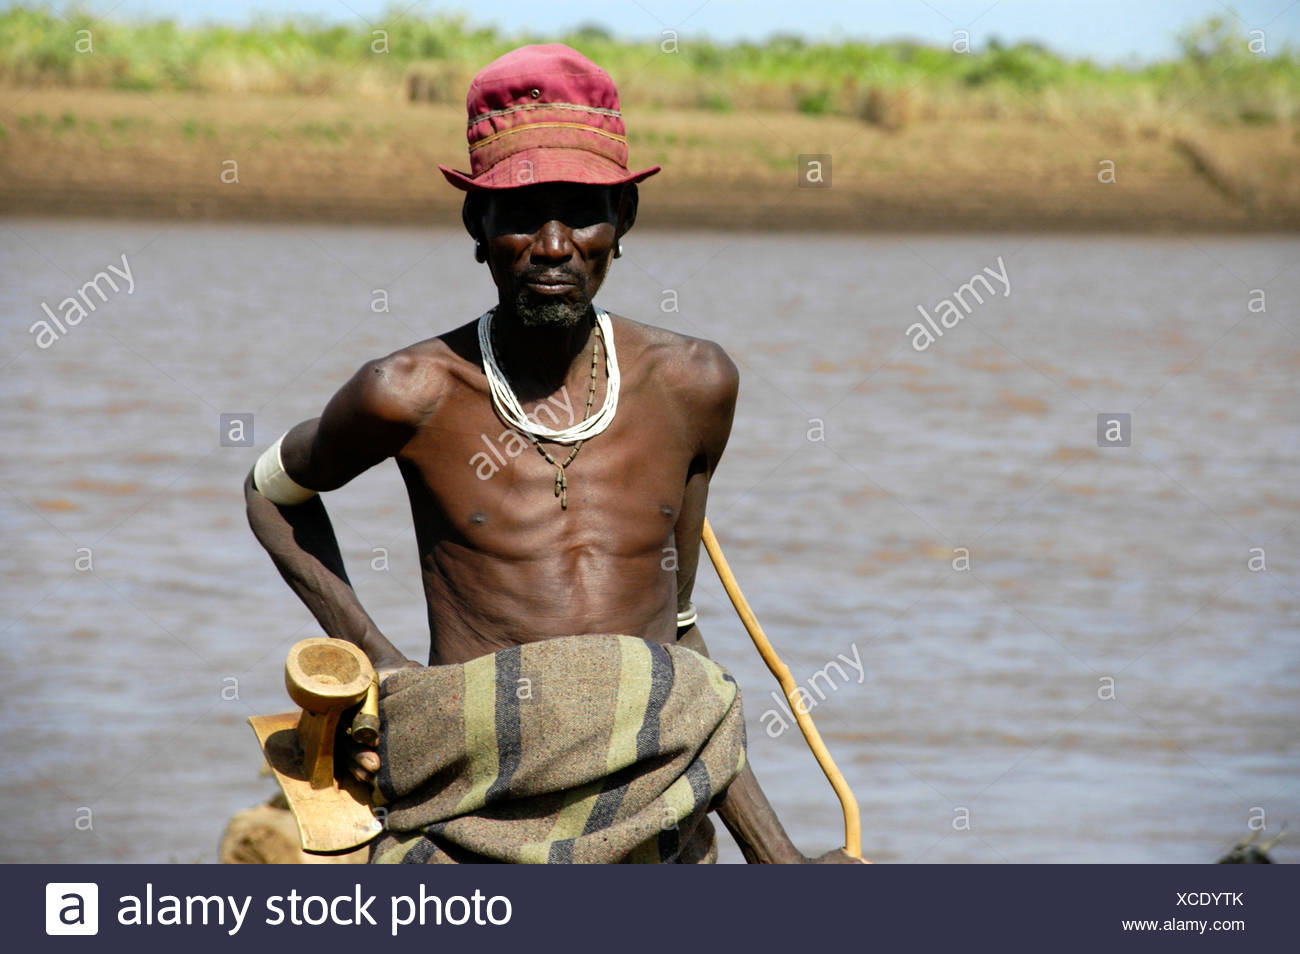 Skinny man with hat at Omo River, Dashenesh people, Ethiopia, Africa - Stock Image